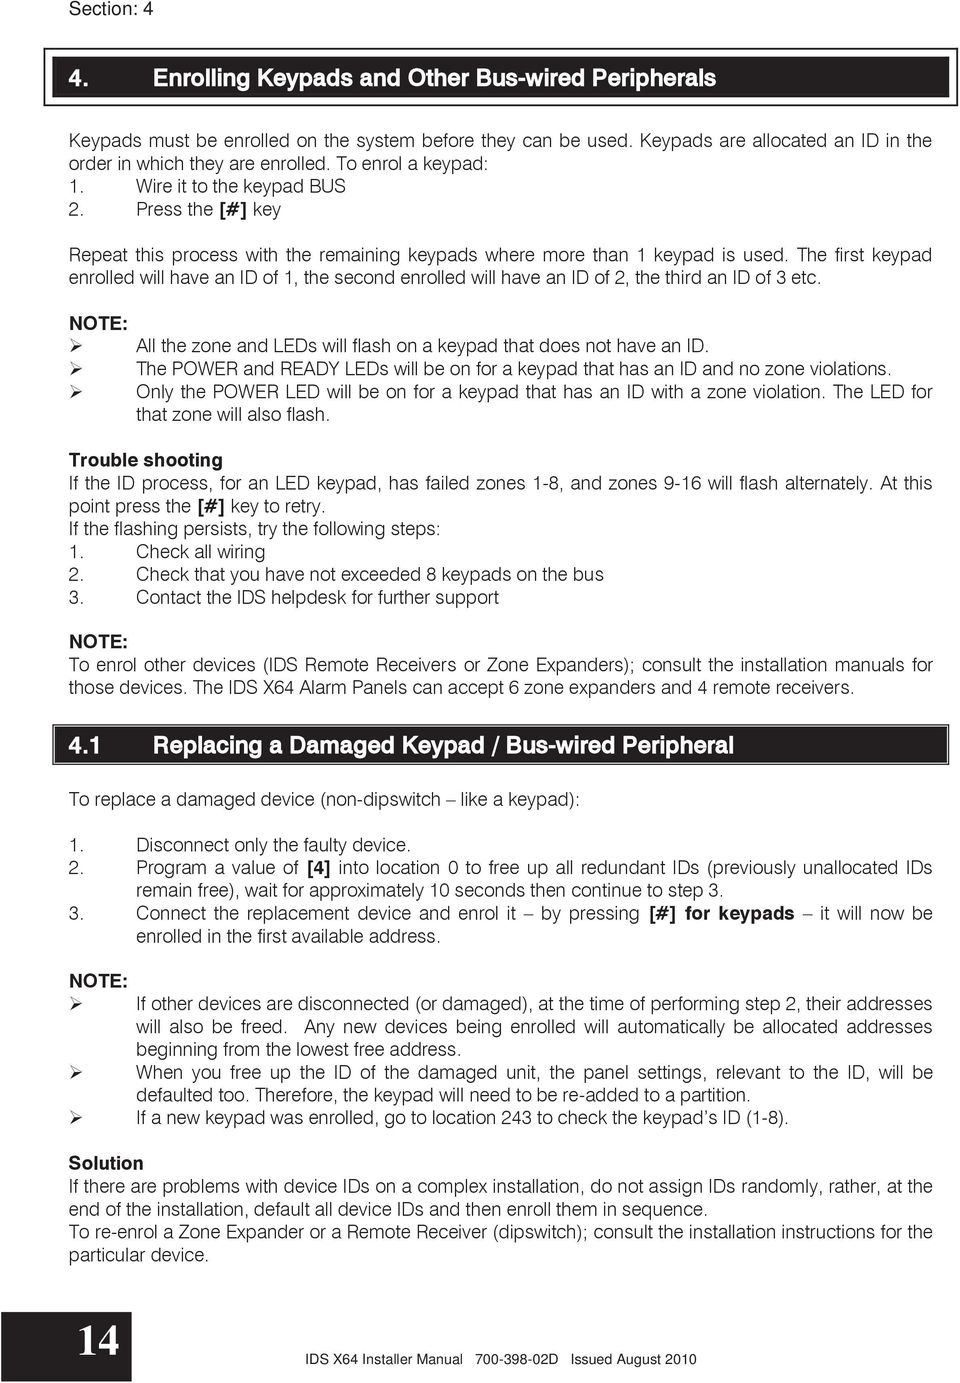 Ids X64 Installer Manual D Issued August Pdf Curving Led Wiring Diagram For Use The First Keypad Enrolled Will Have An Id Of 1 Second